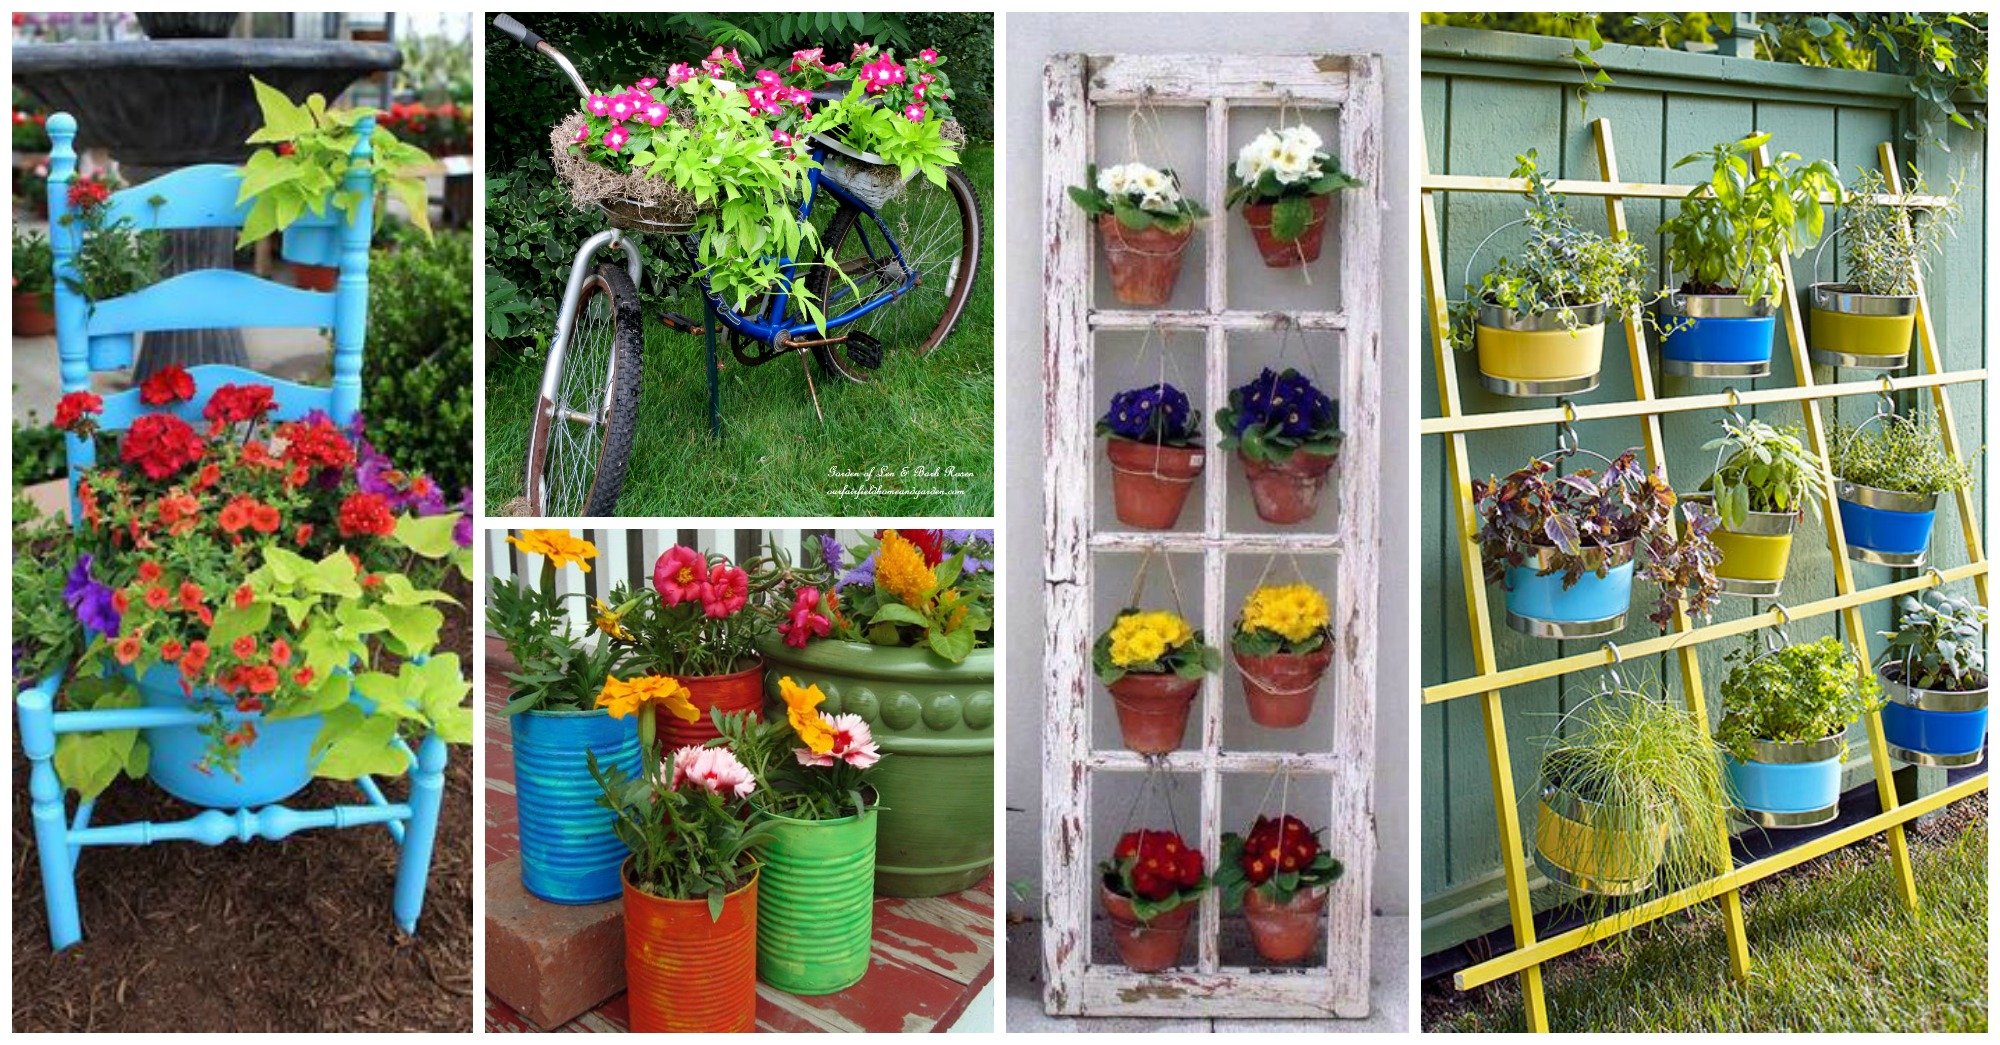 20 Cheap DIY Ideas to Make Your Yard More Cheerful